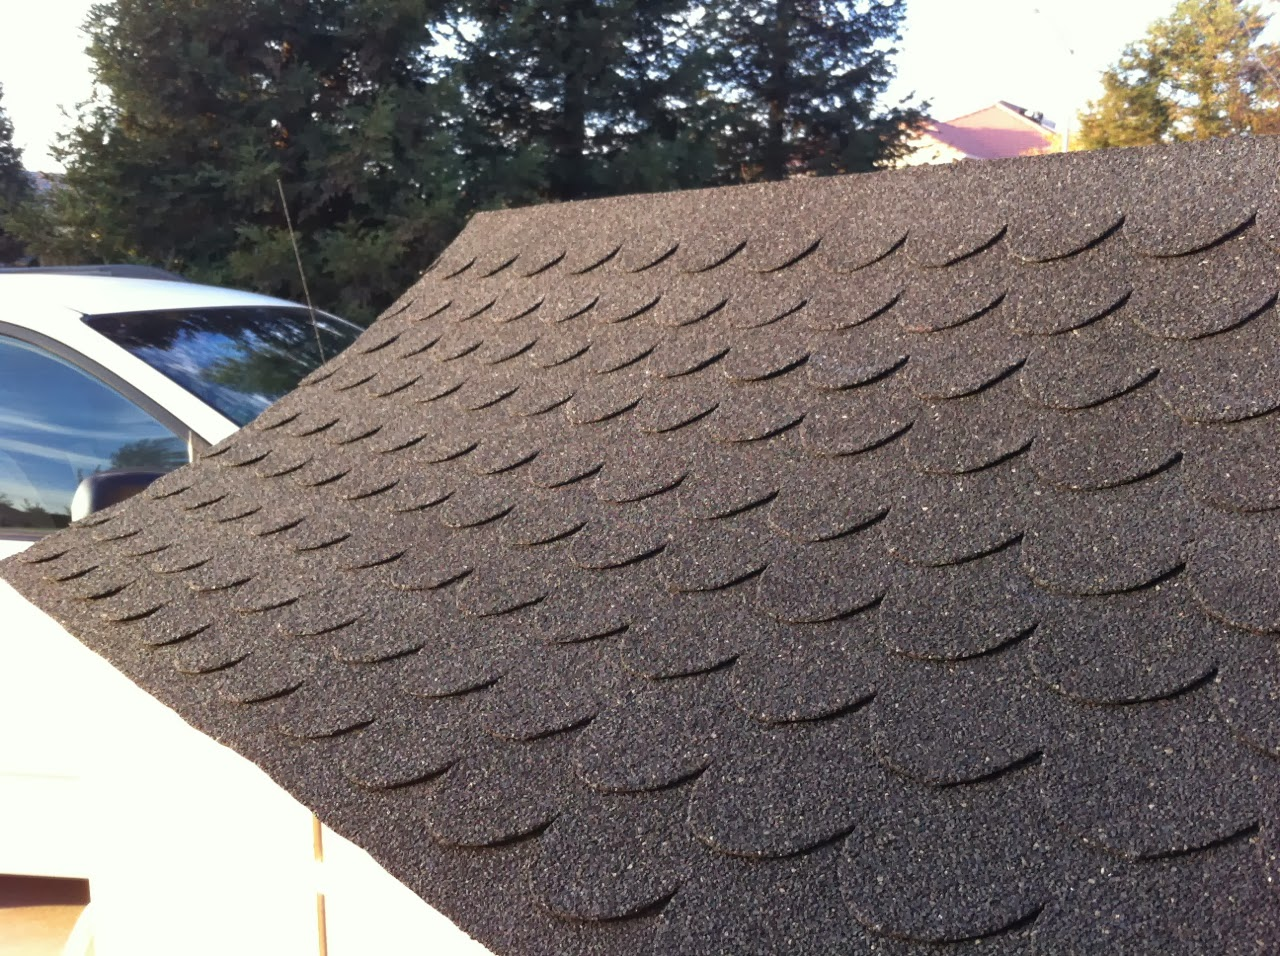 Paris Cabinet Hes Got a New Drill Scalloped Shingles – Scalloped Roof Shingles